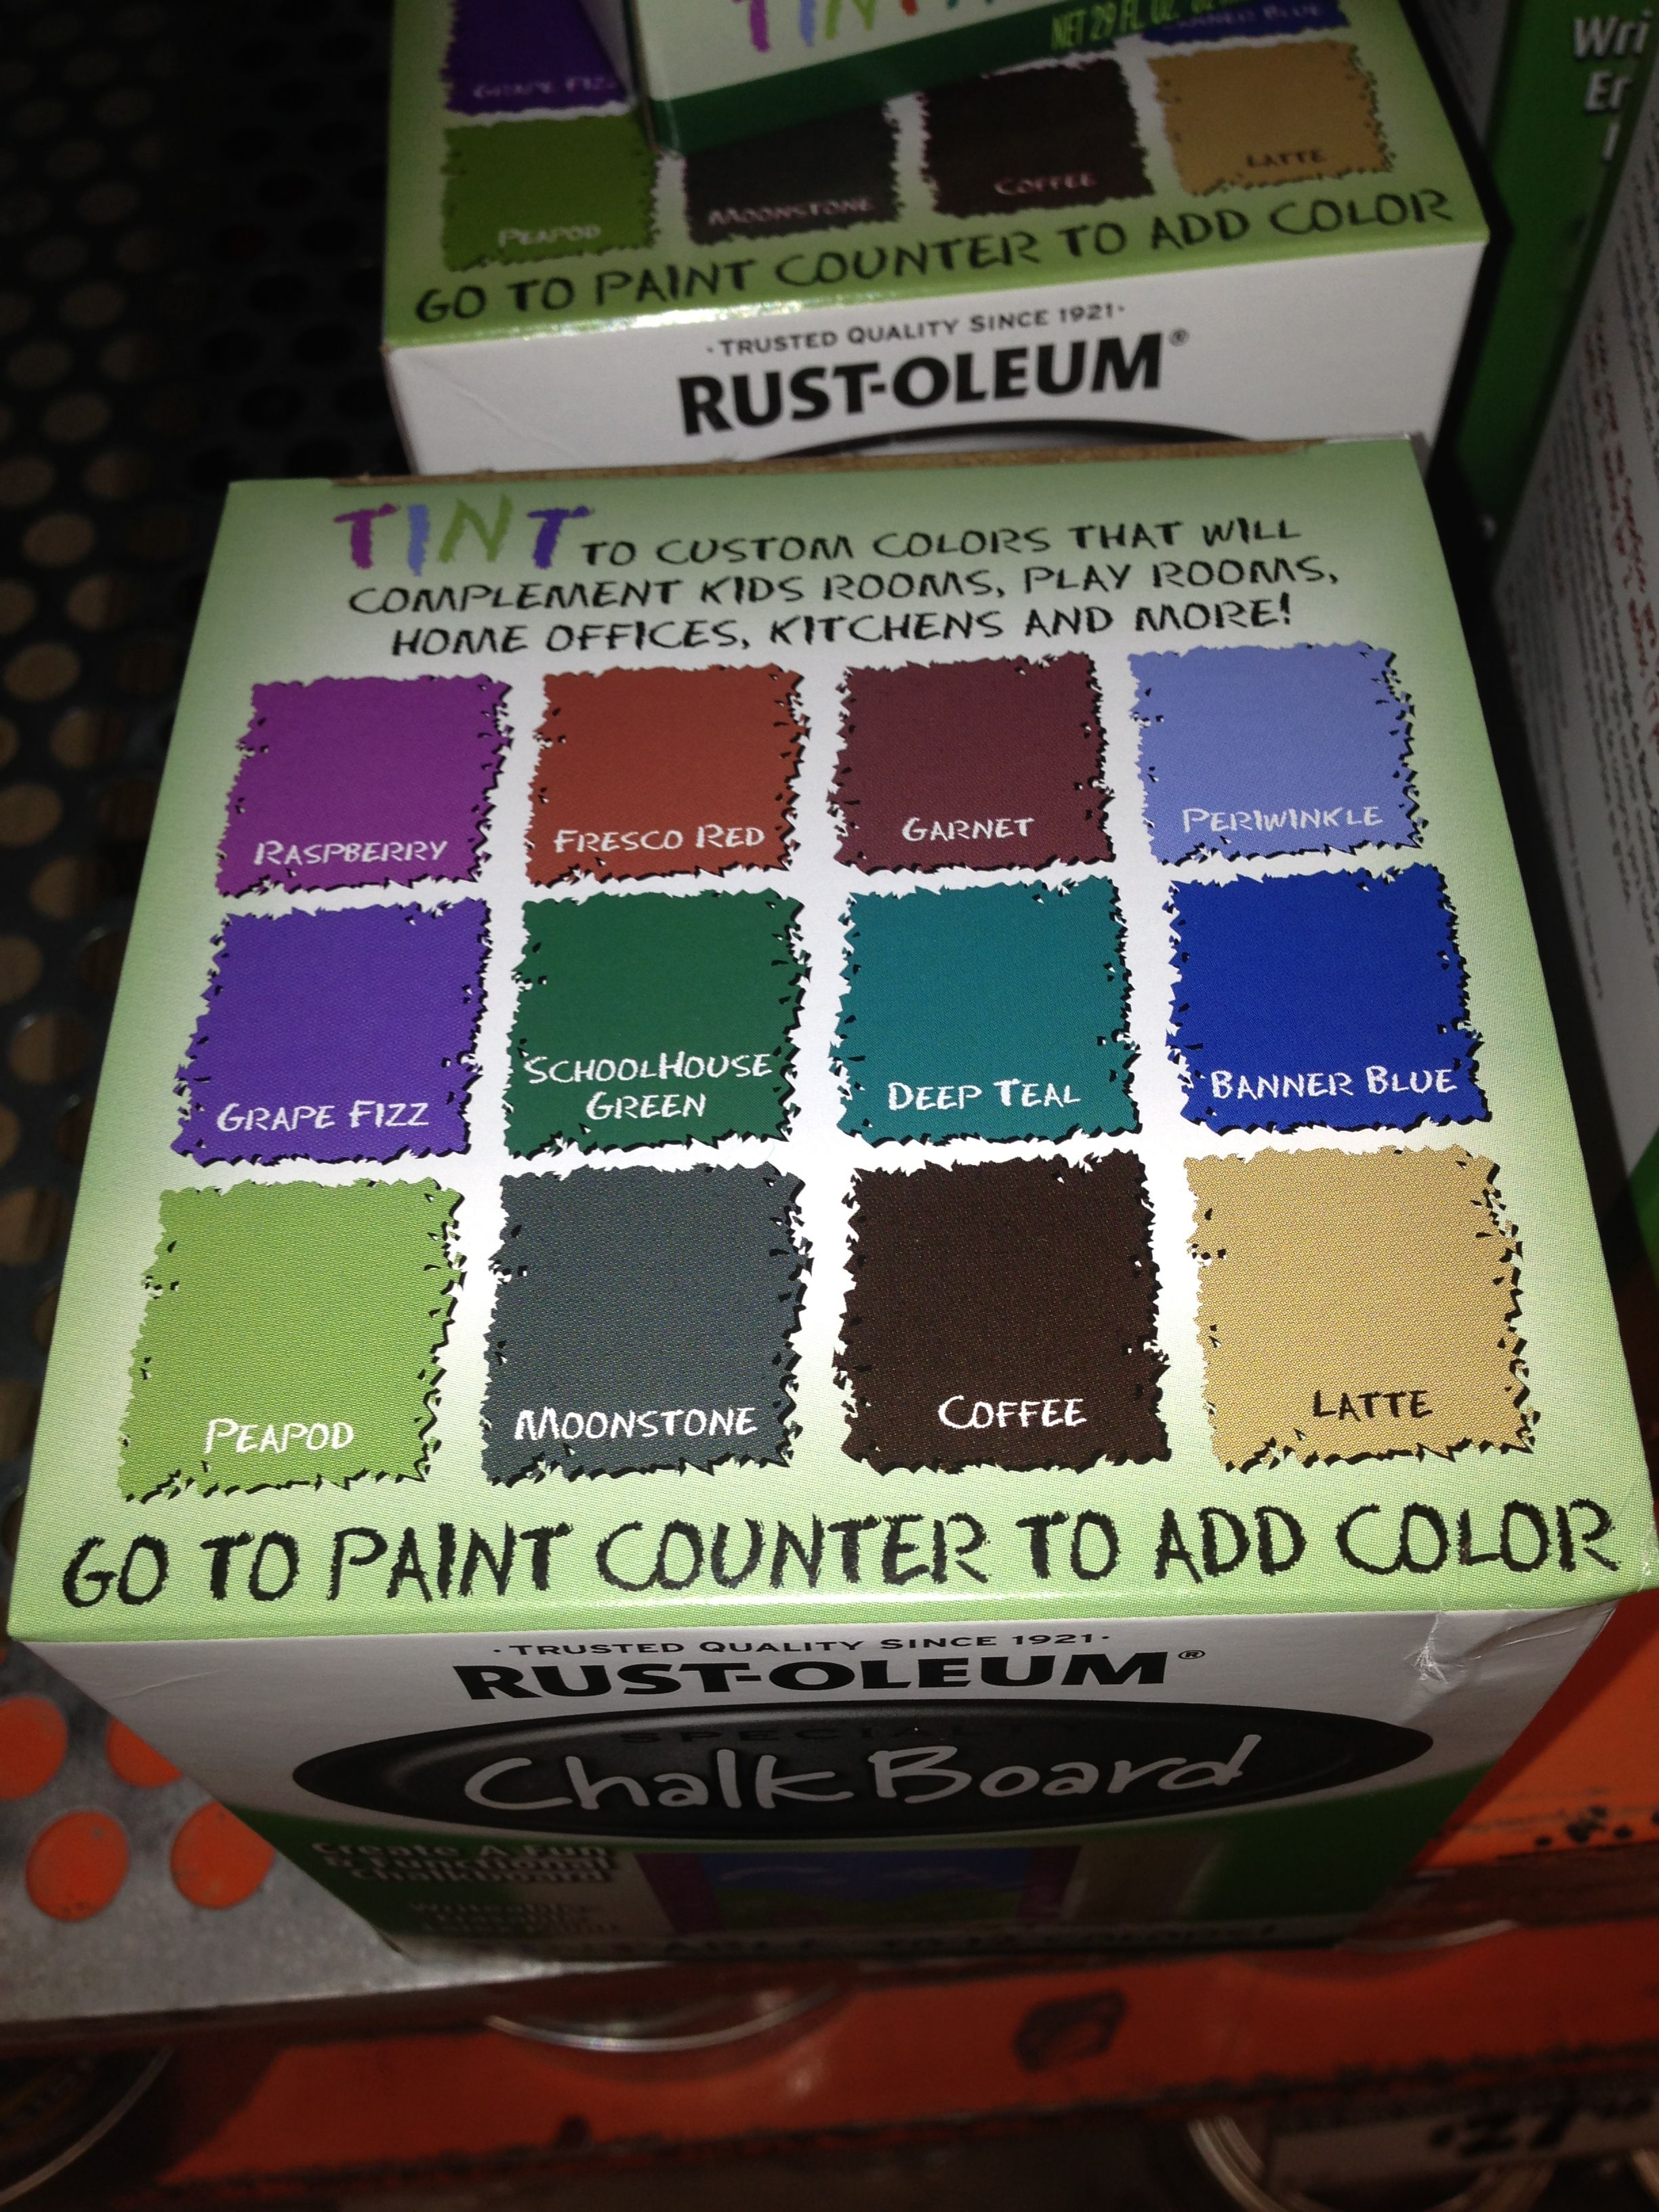 Home Depot Chalkboard Paint Colors For The Big Closet In His Room